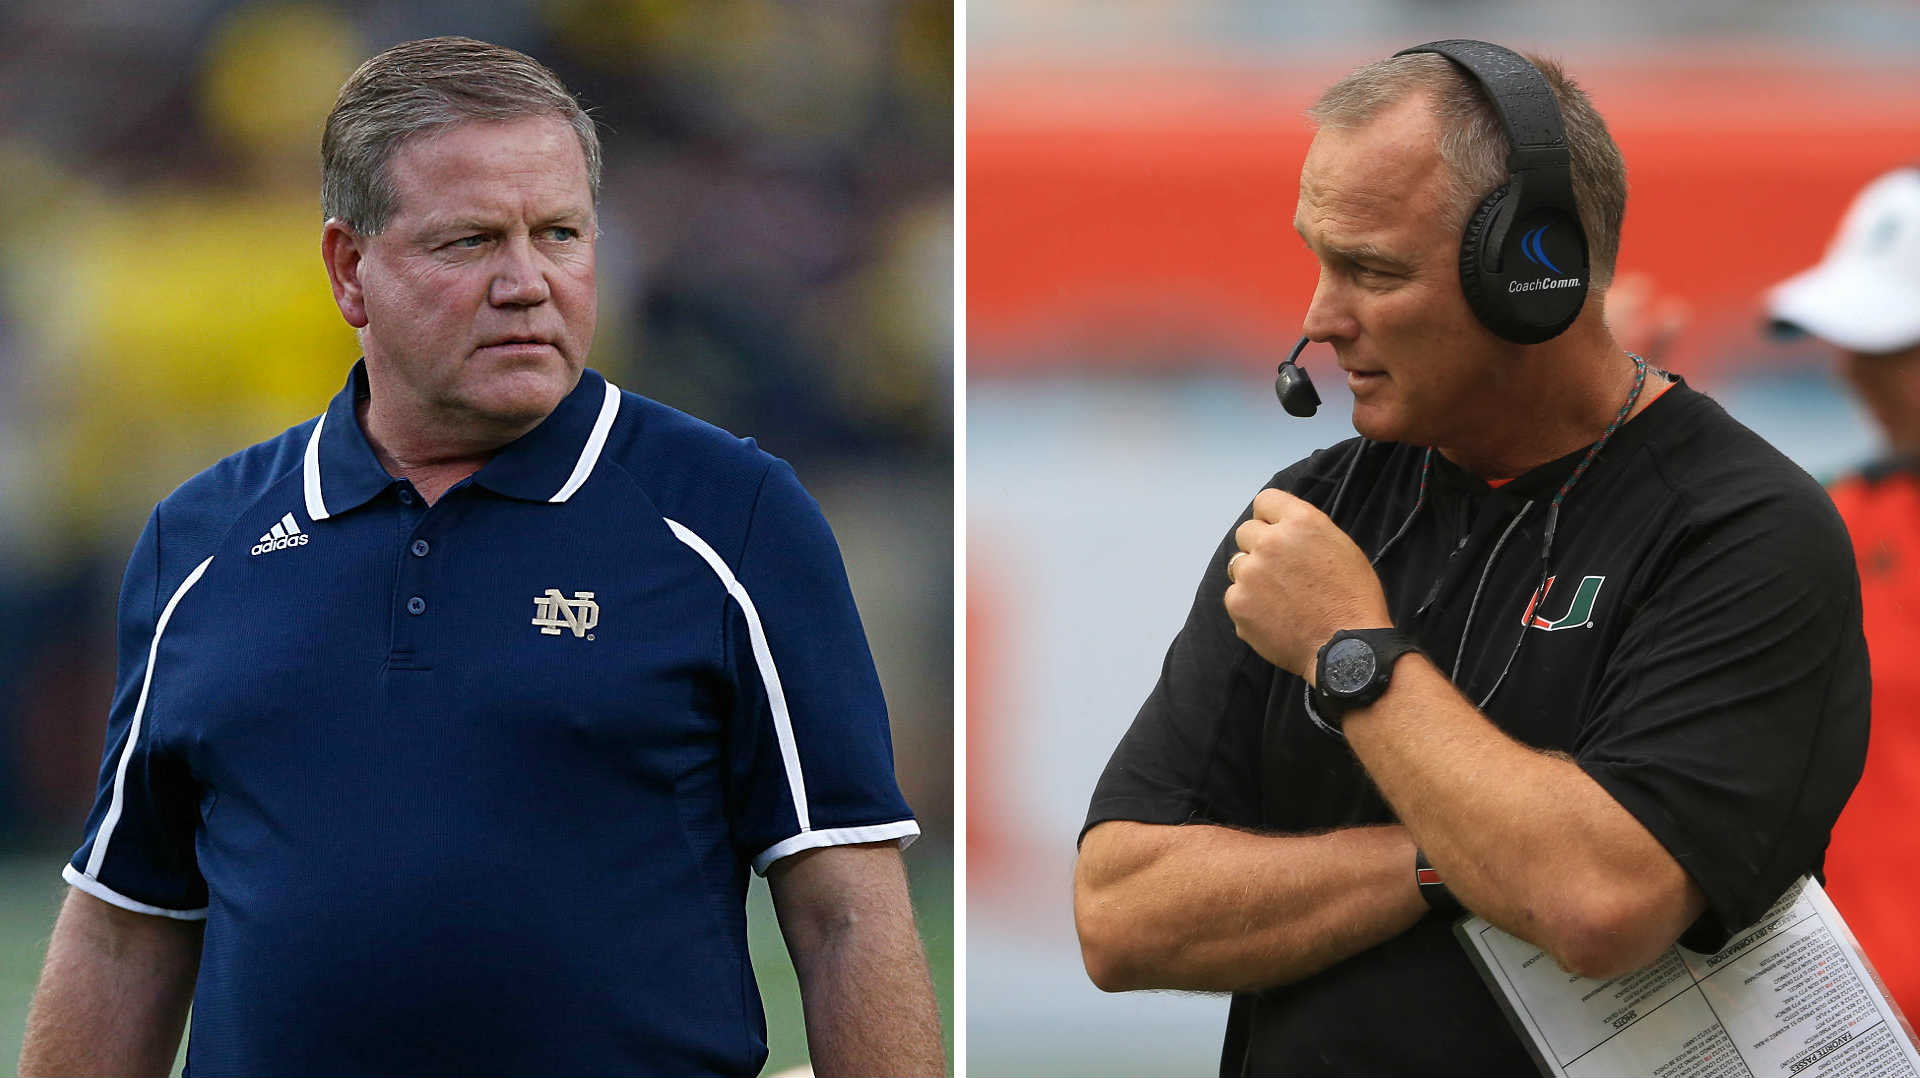 Notre Dame vs. Miami: A rivalry that could be great again, if the schedule allowed it